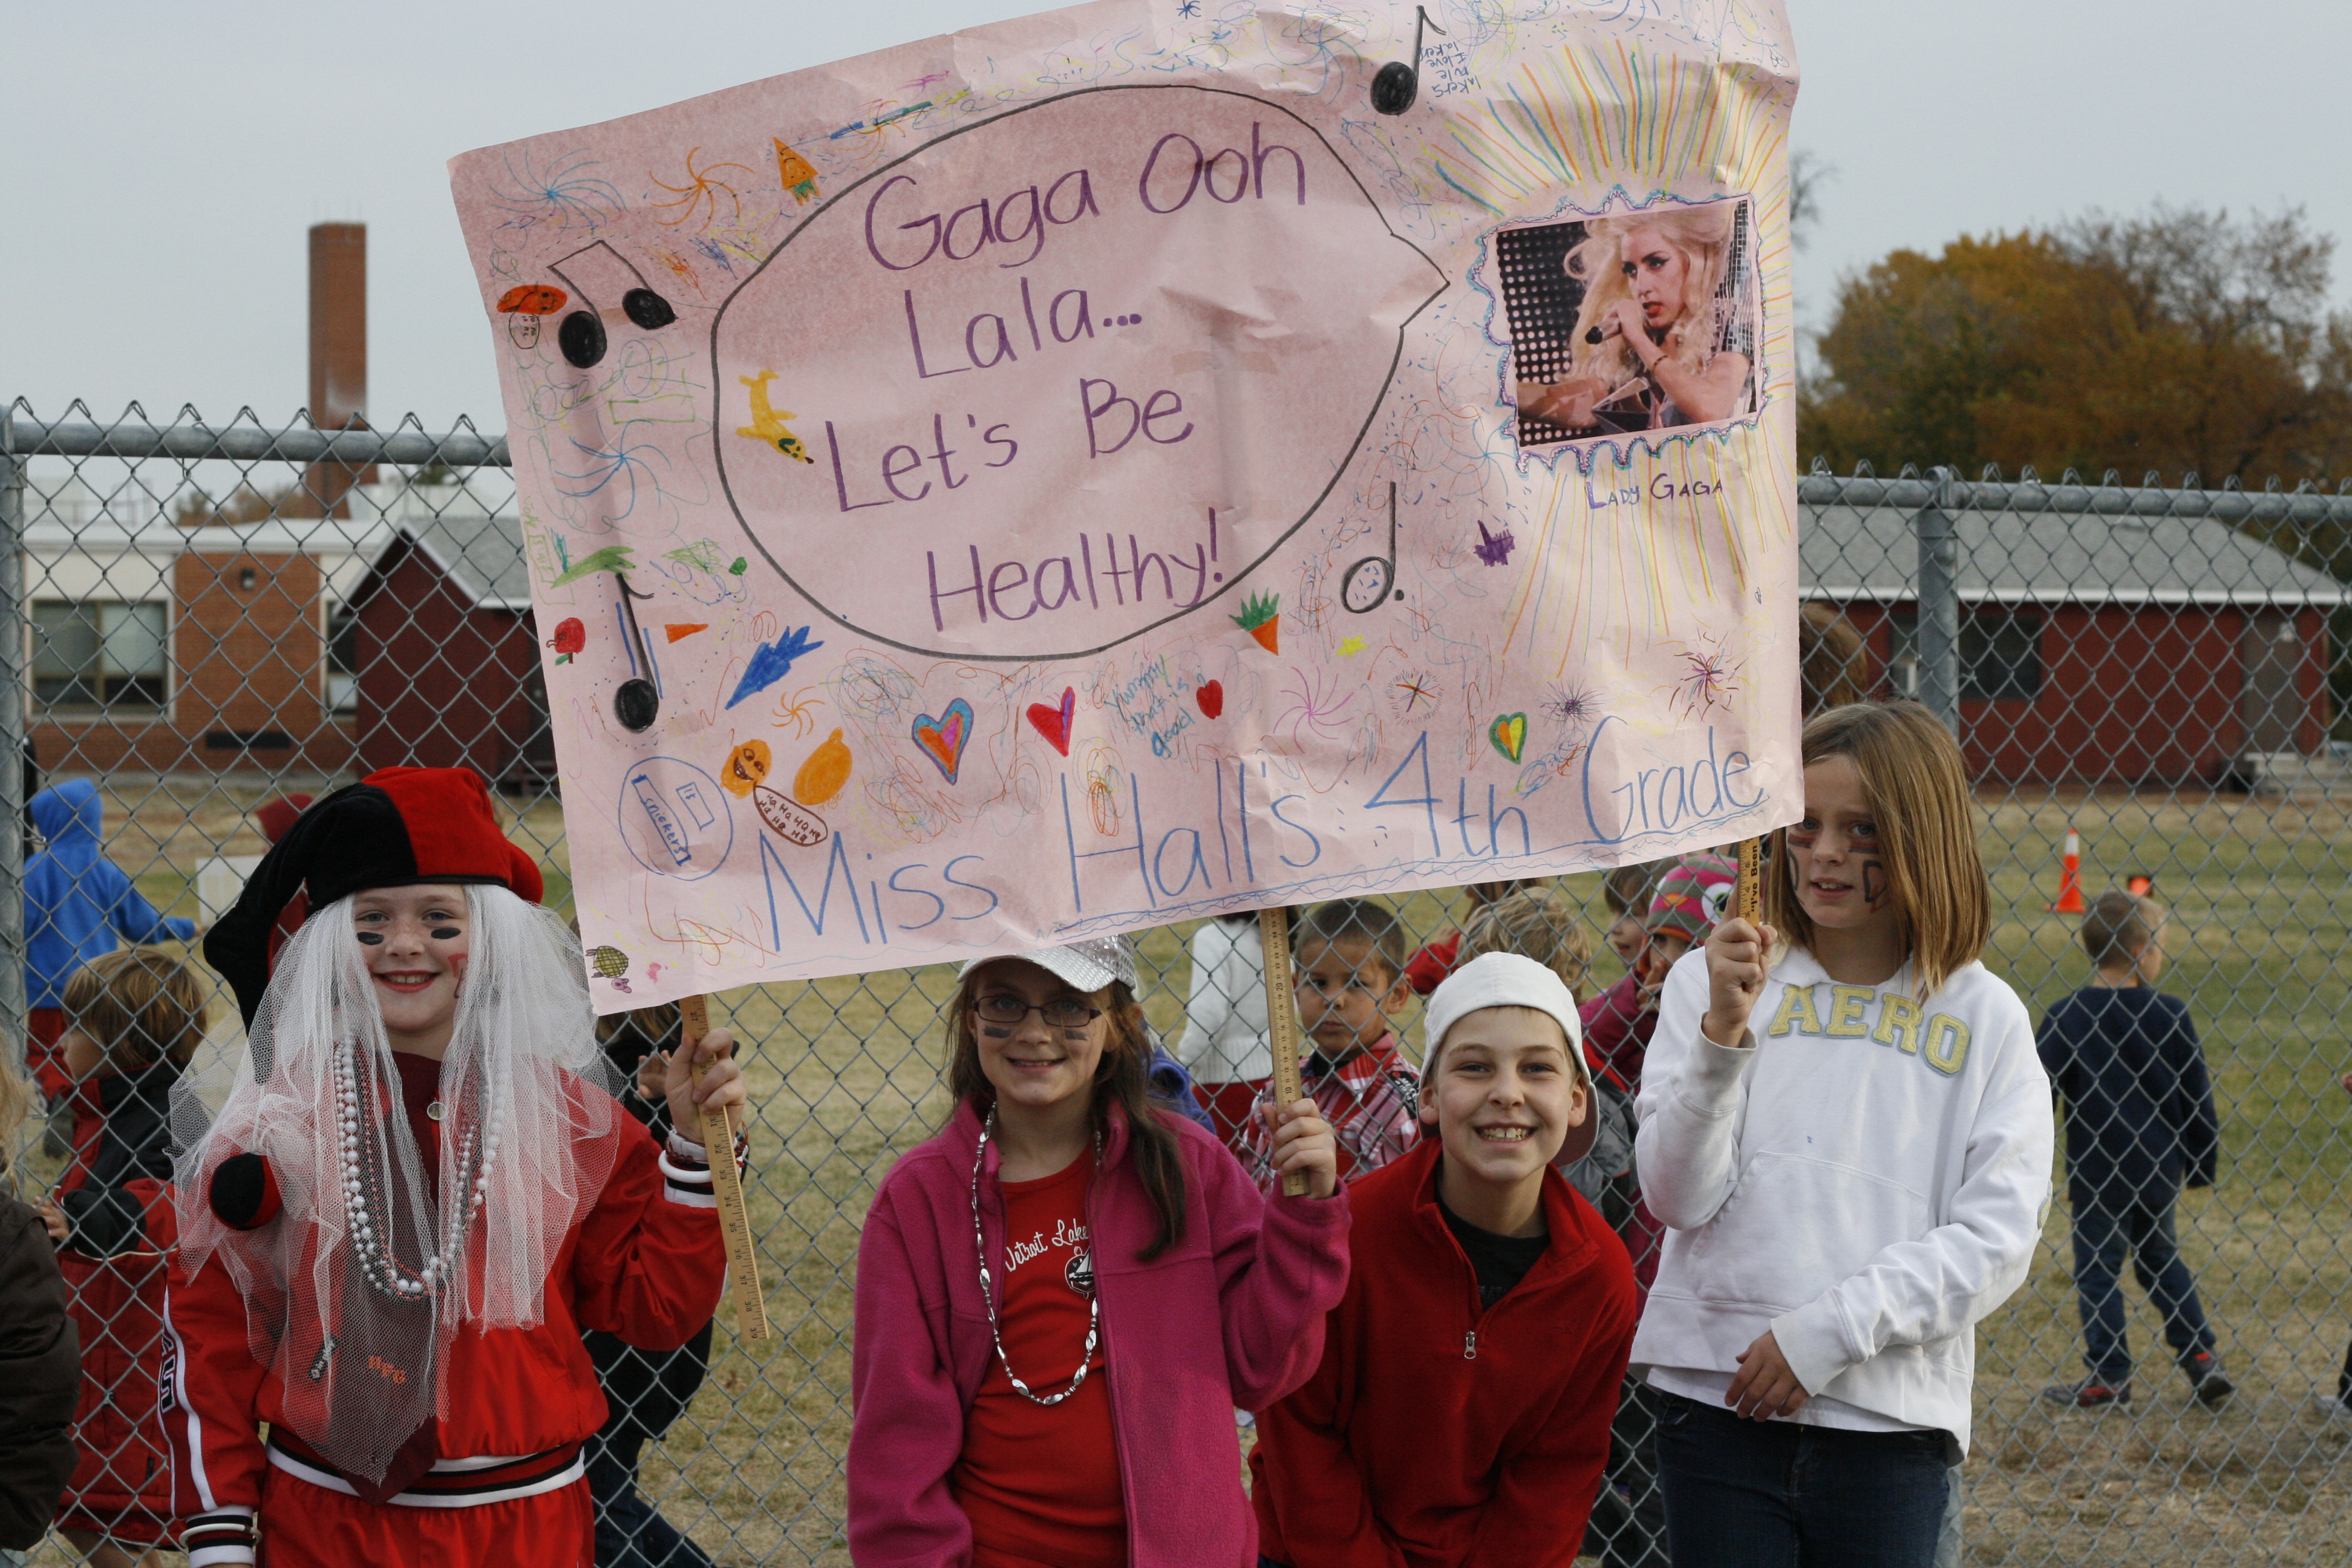 Children holding homemade pro-health signs